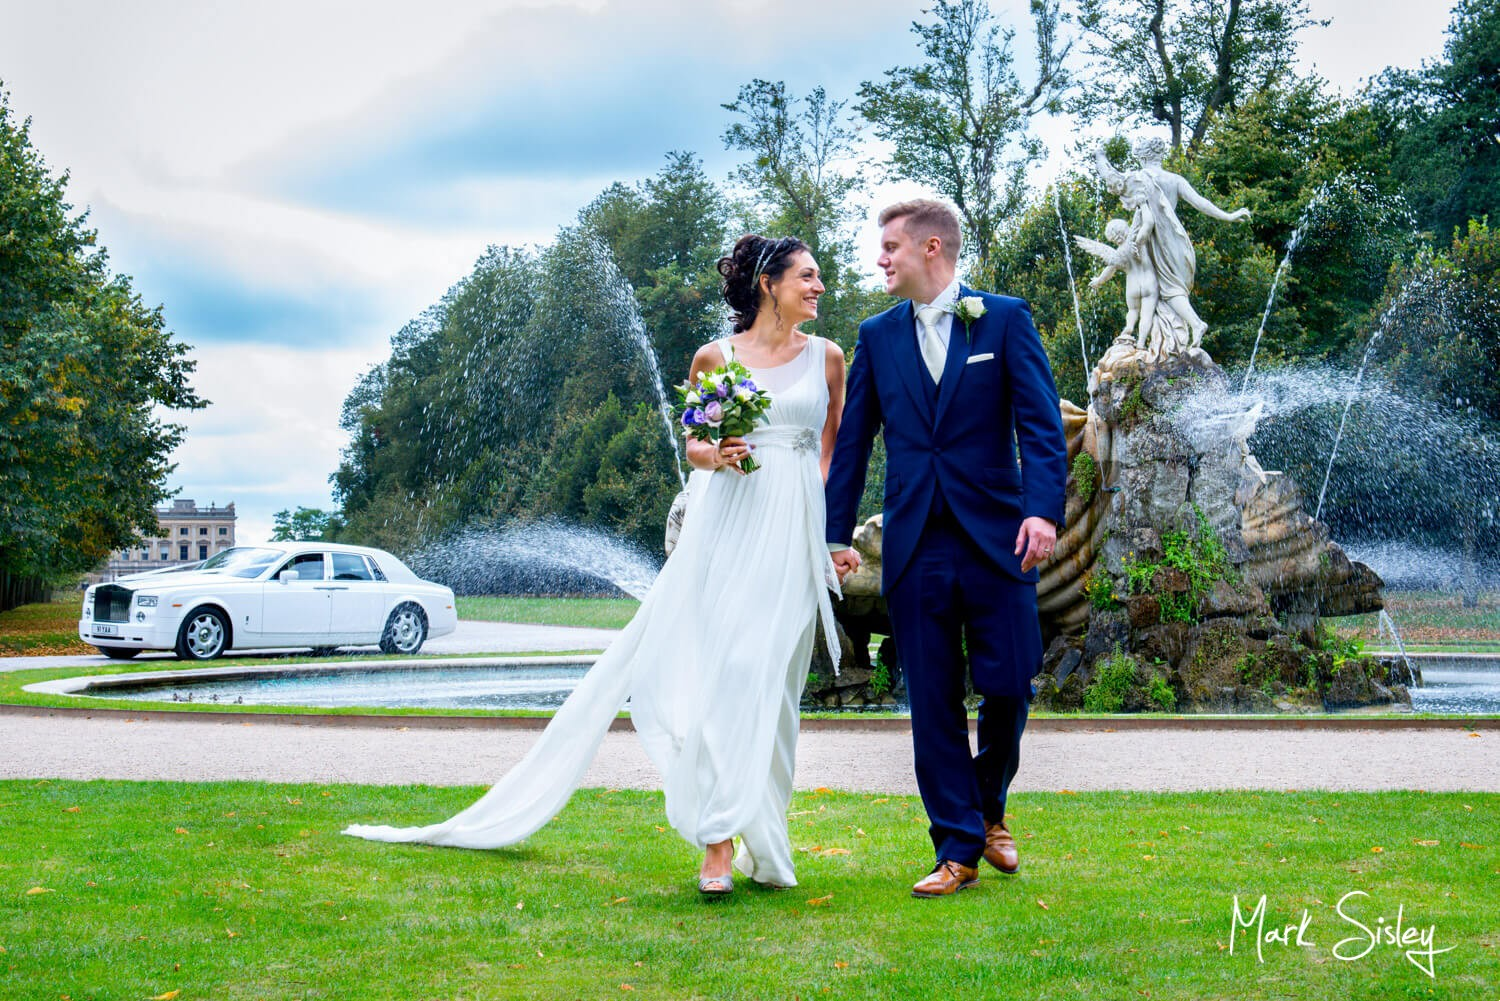 Cliveden House wedding photography blog - pictures by the Fountain of Love